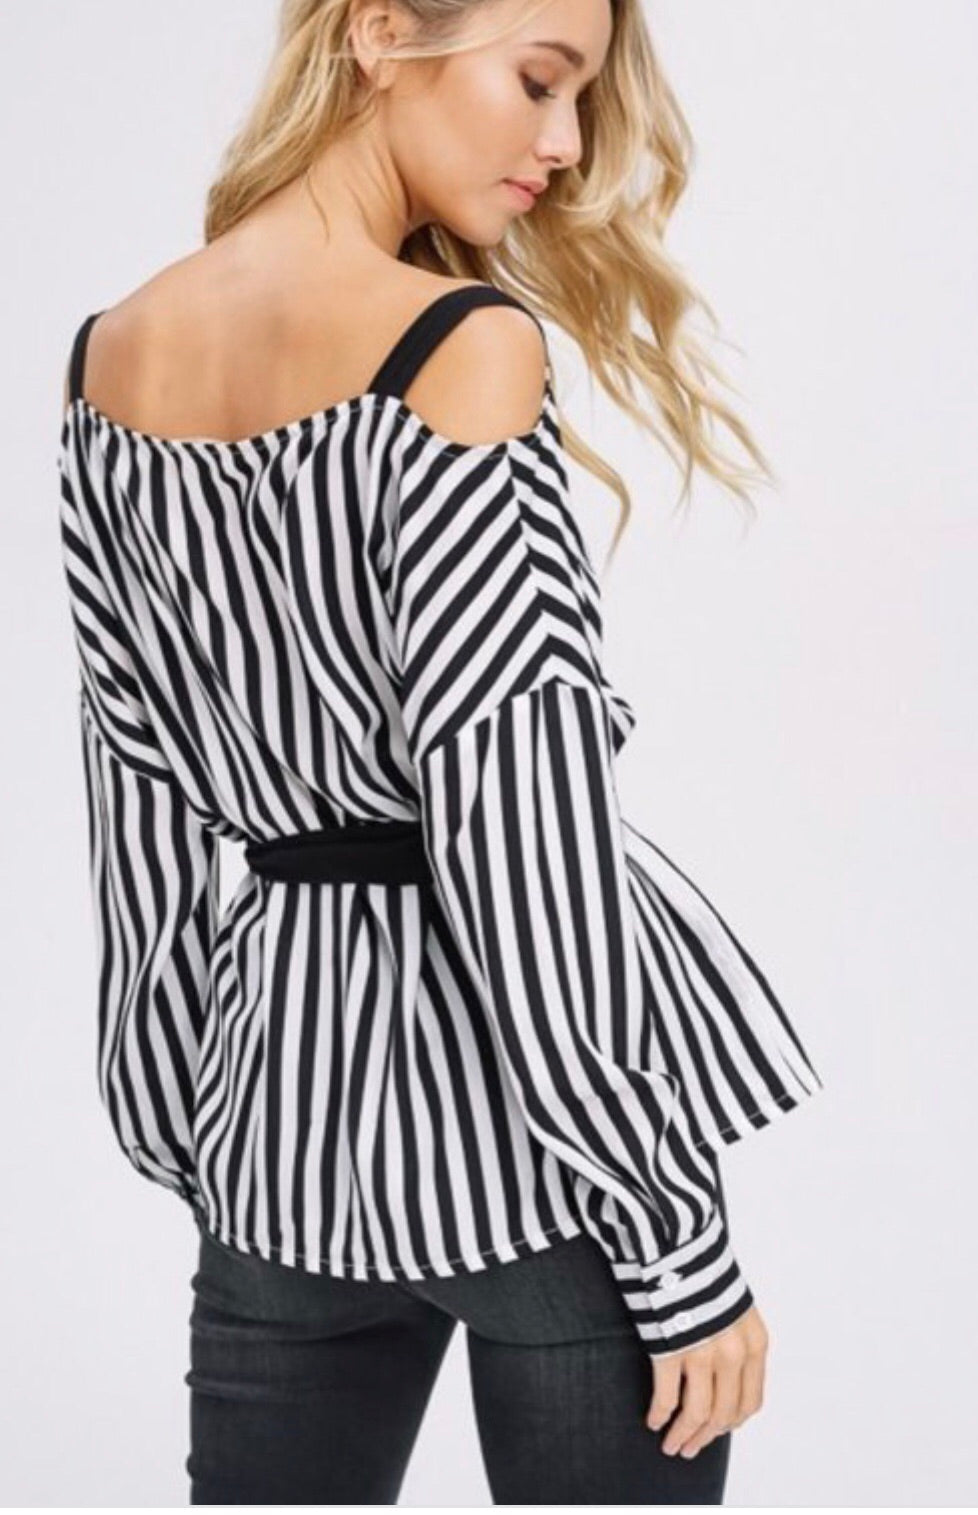 Striped Black and White  Wrap Top